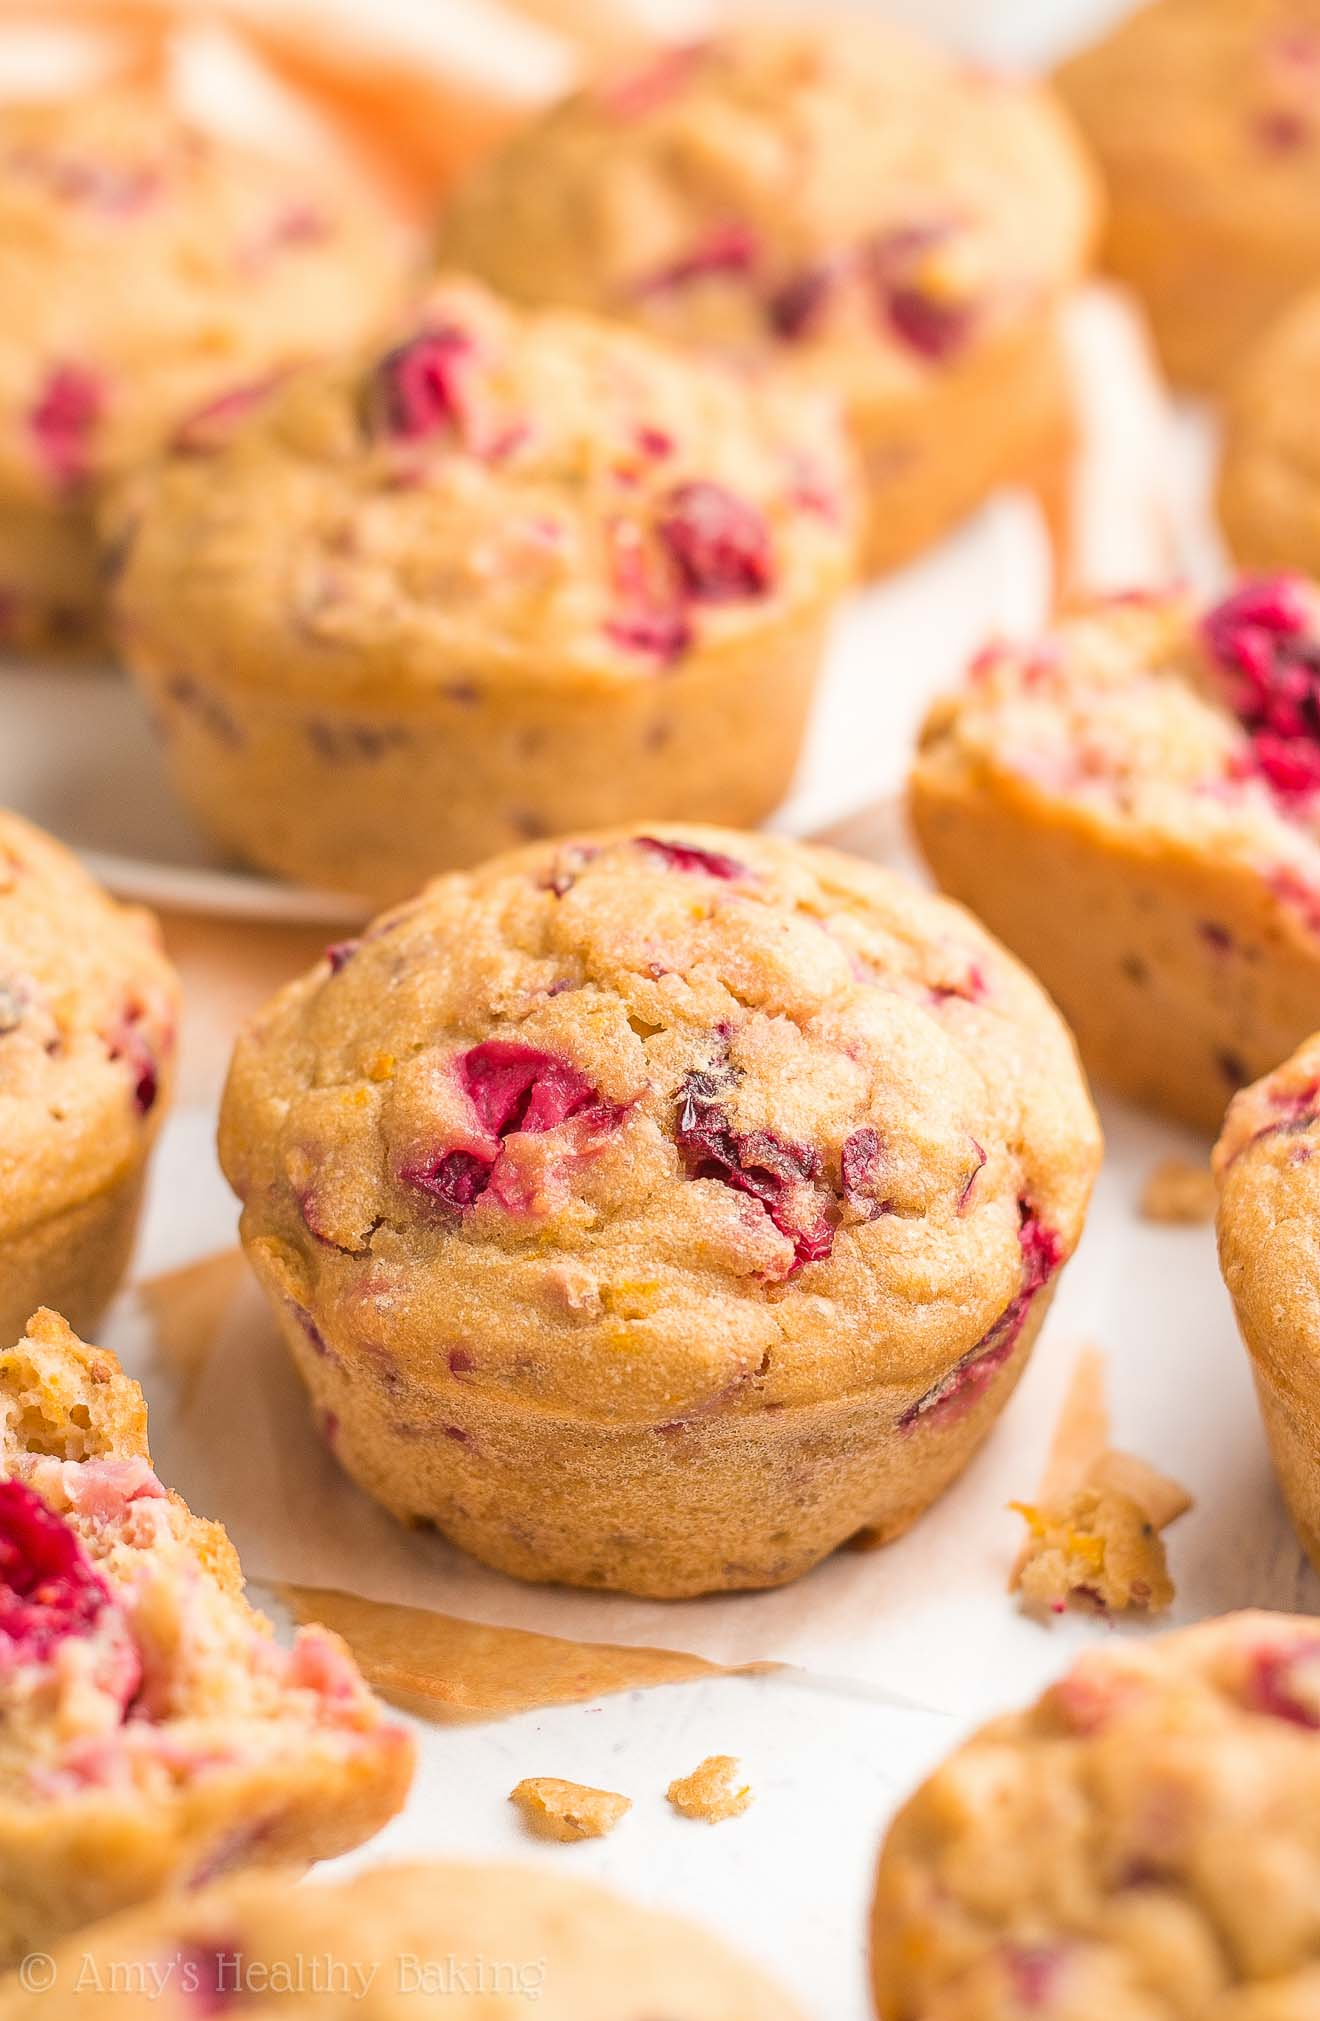 The ULTIMATE Healthy Cranberry Orange Muffins -- only 96 calories & as tender as cupcakes! I'm OBSESSED with the easy recipe! Sweet, flavorful & truly the BEST!